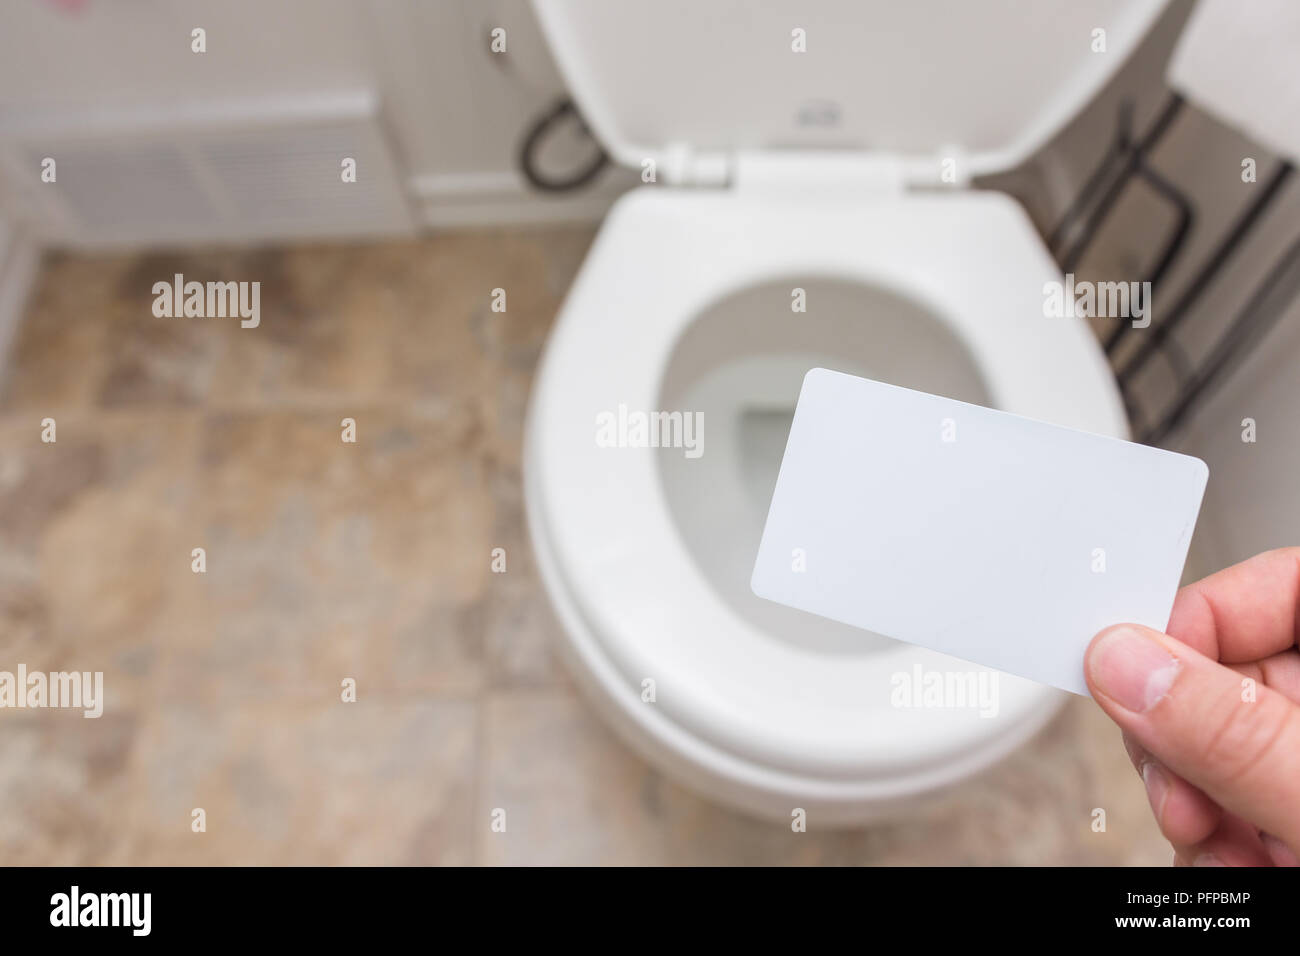 Holding Blank Card Credit Membership Coupon Drivers License Into Toilet Bright And Clean Finance Concept